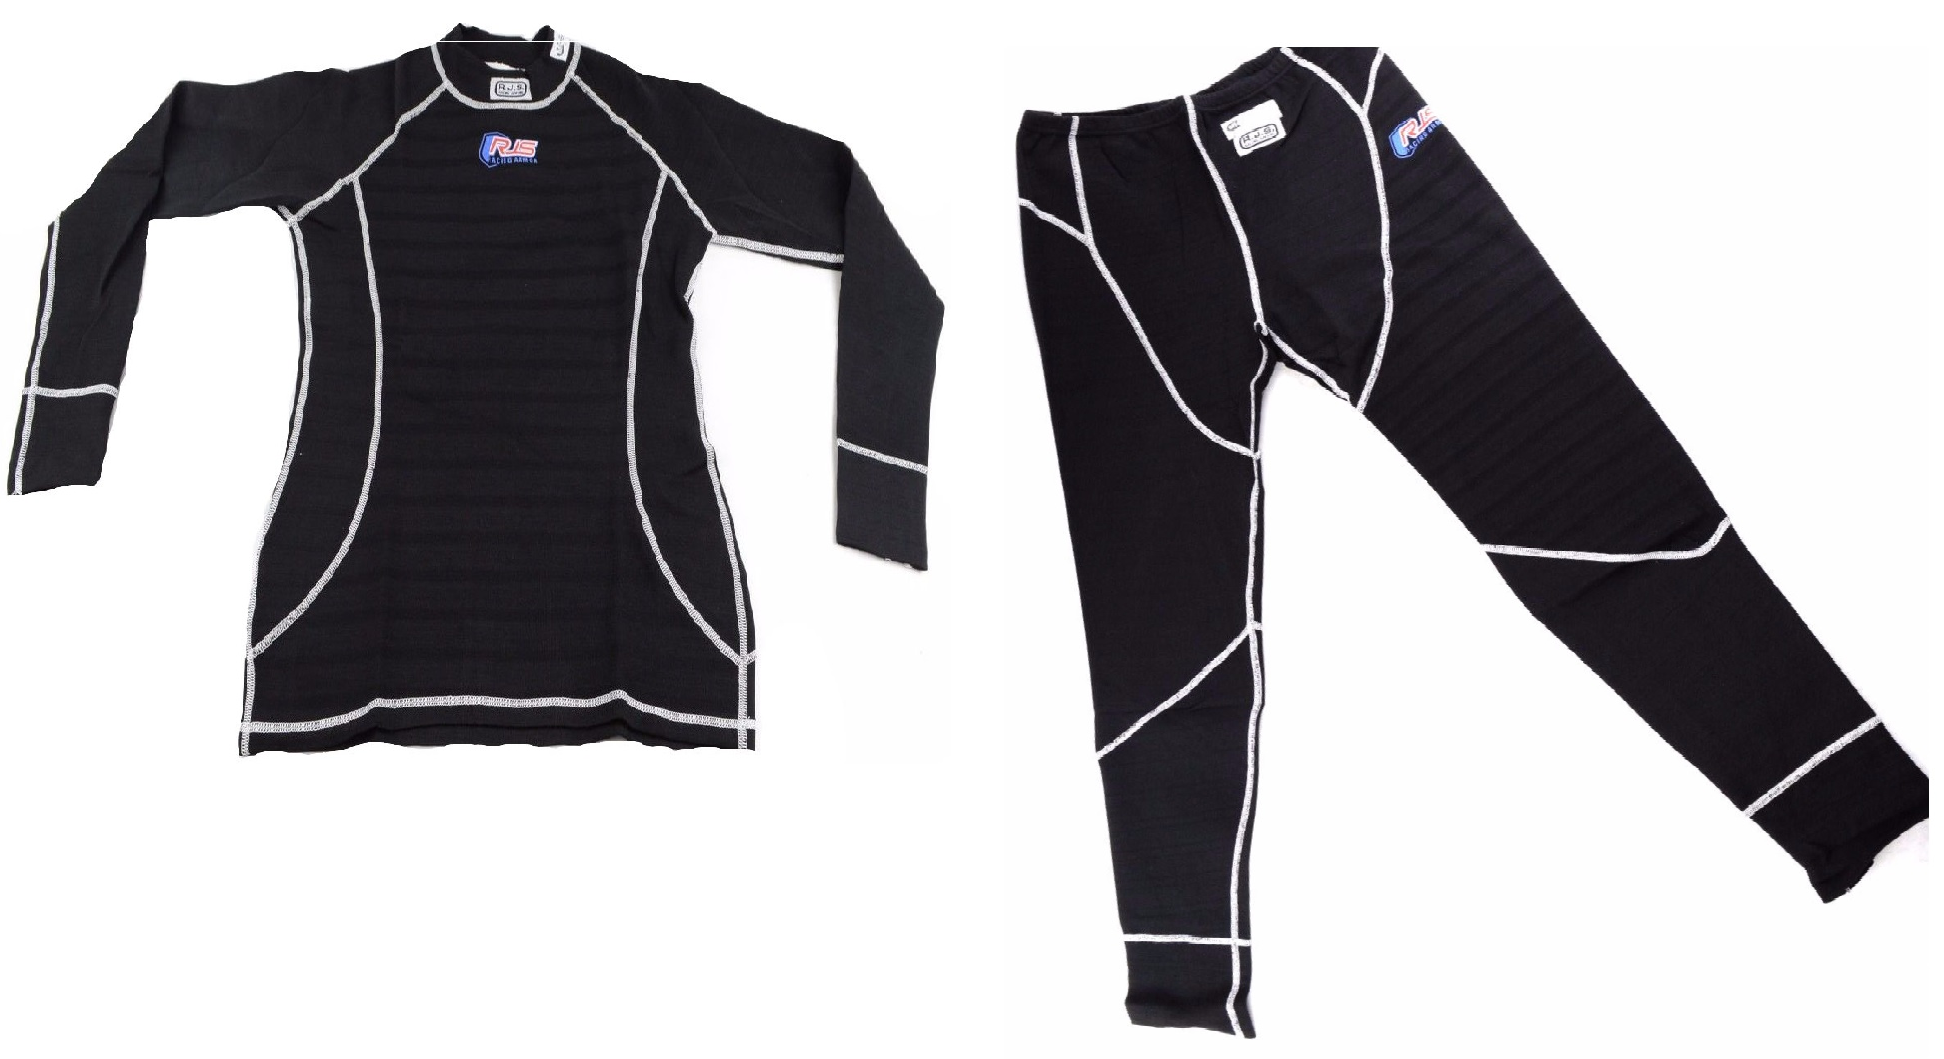 RACING UNDERWEAR SFI 3.3 APPROVED UNDERGARMENT RJS 2 PC TOP /& BOTTOM WHITE LARGE